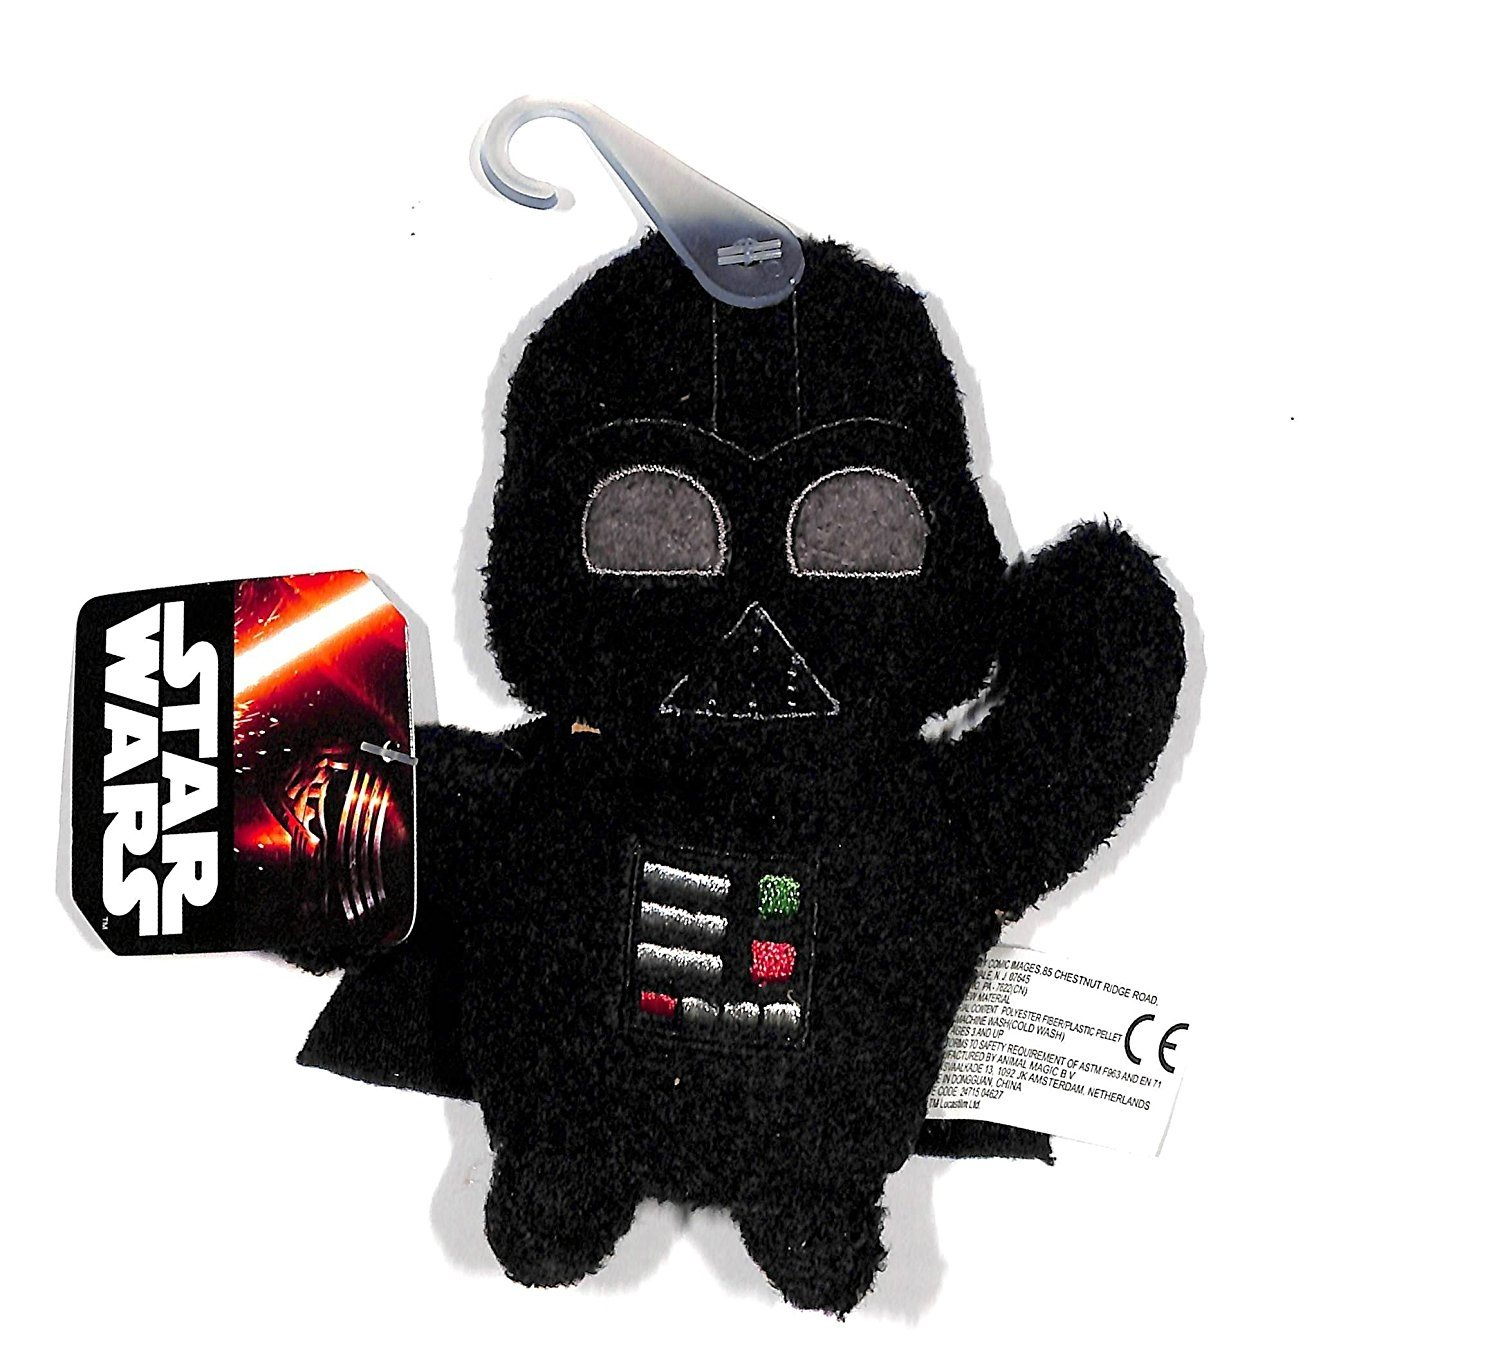 "Star Wars The Force Awakens Darth Vader 4"" Plush Footzeez Comic Images Ep 7"